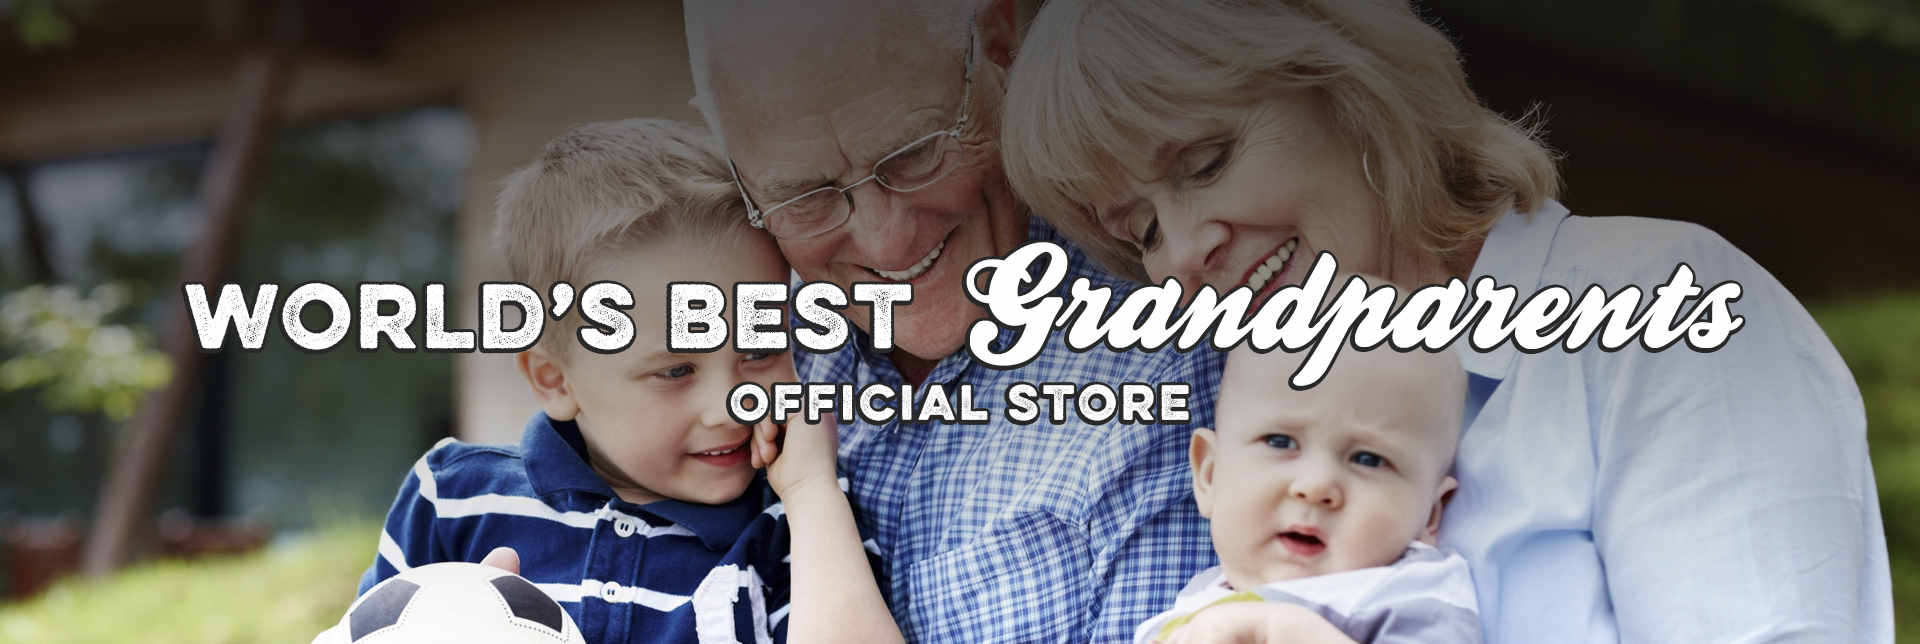 World's Best Grandparents